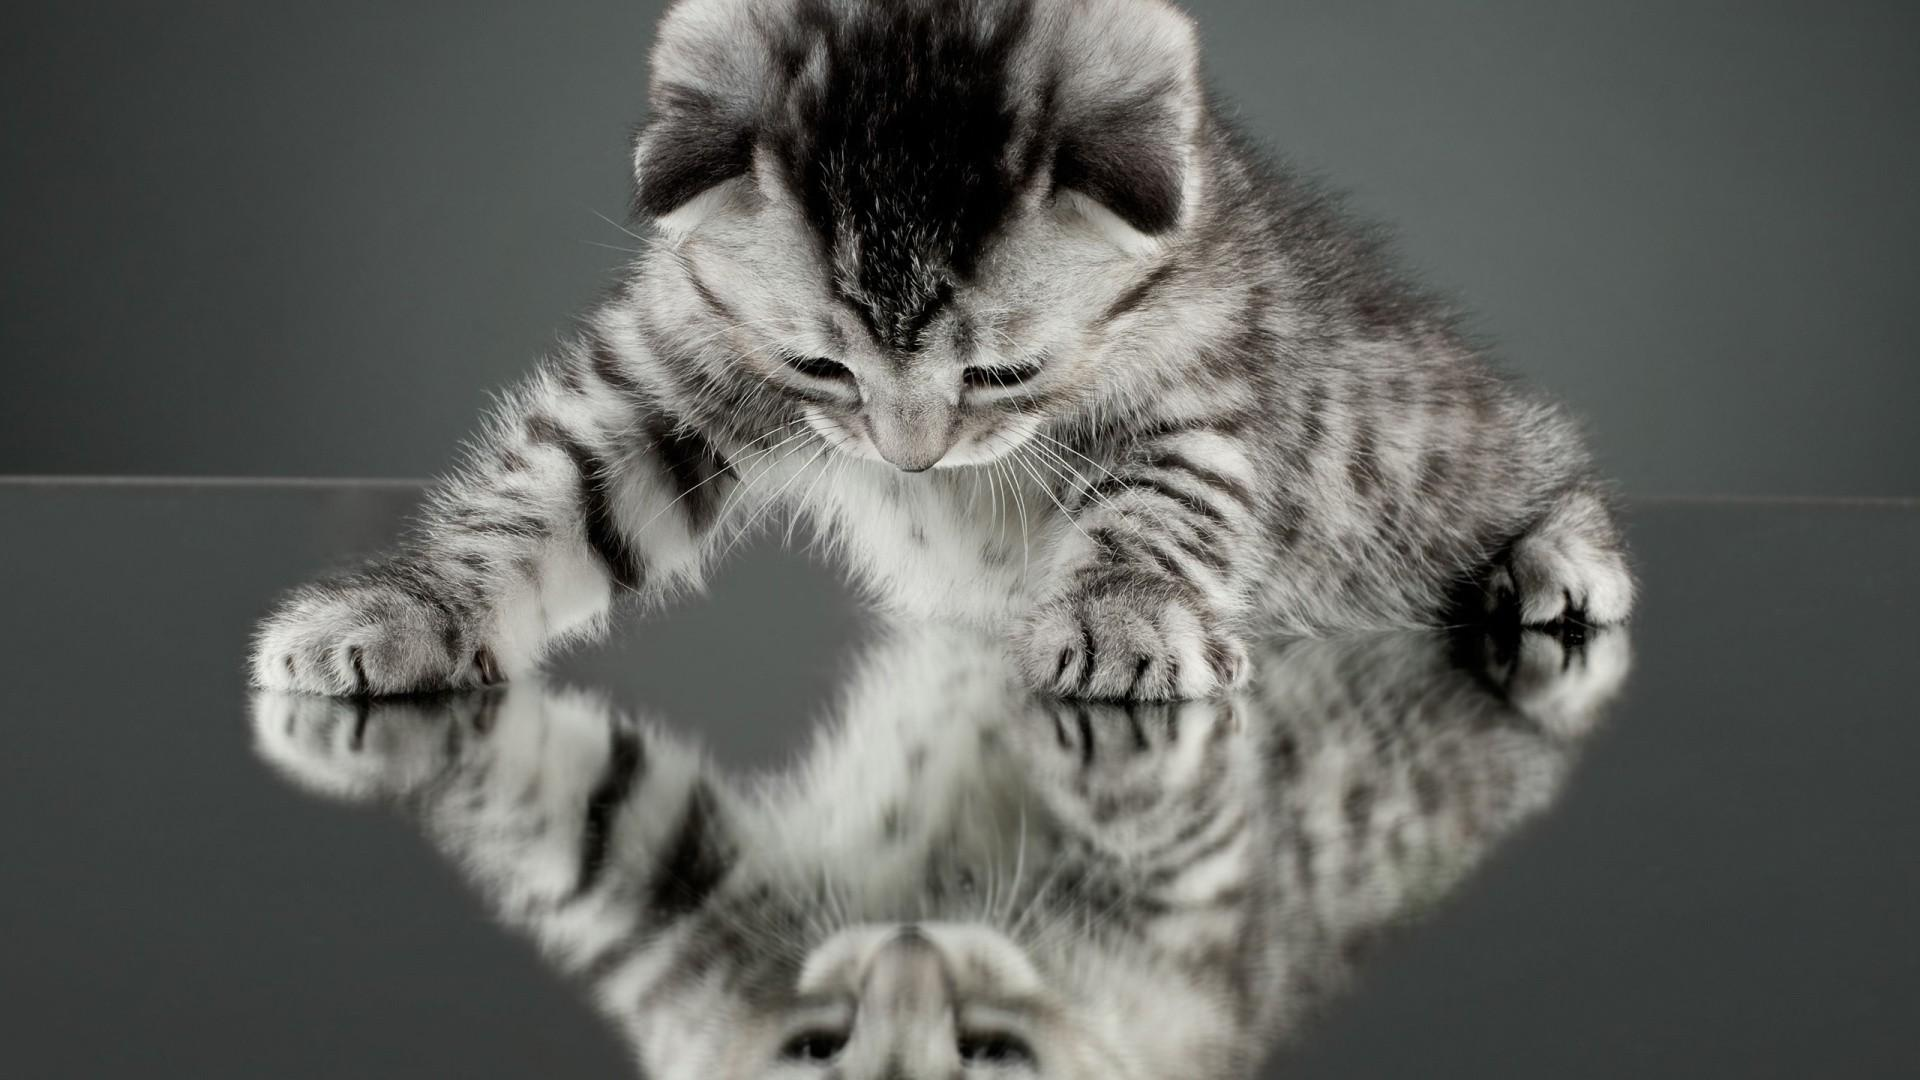 Check Out These Cats That Look Like Tigers  Tiger Foundation